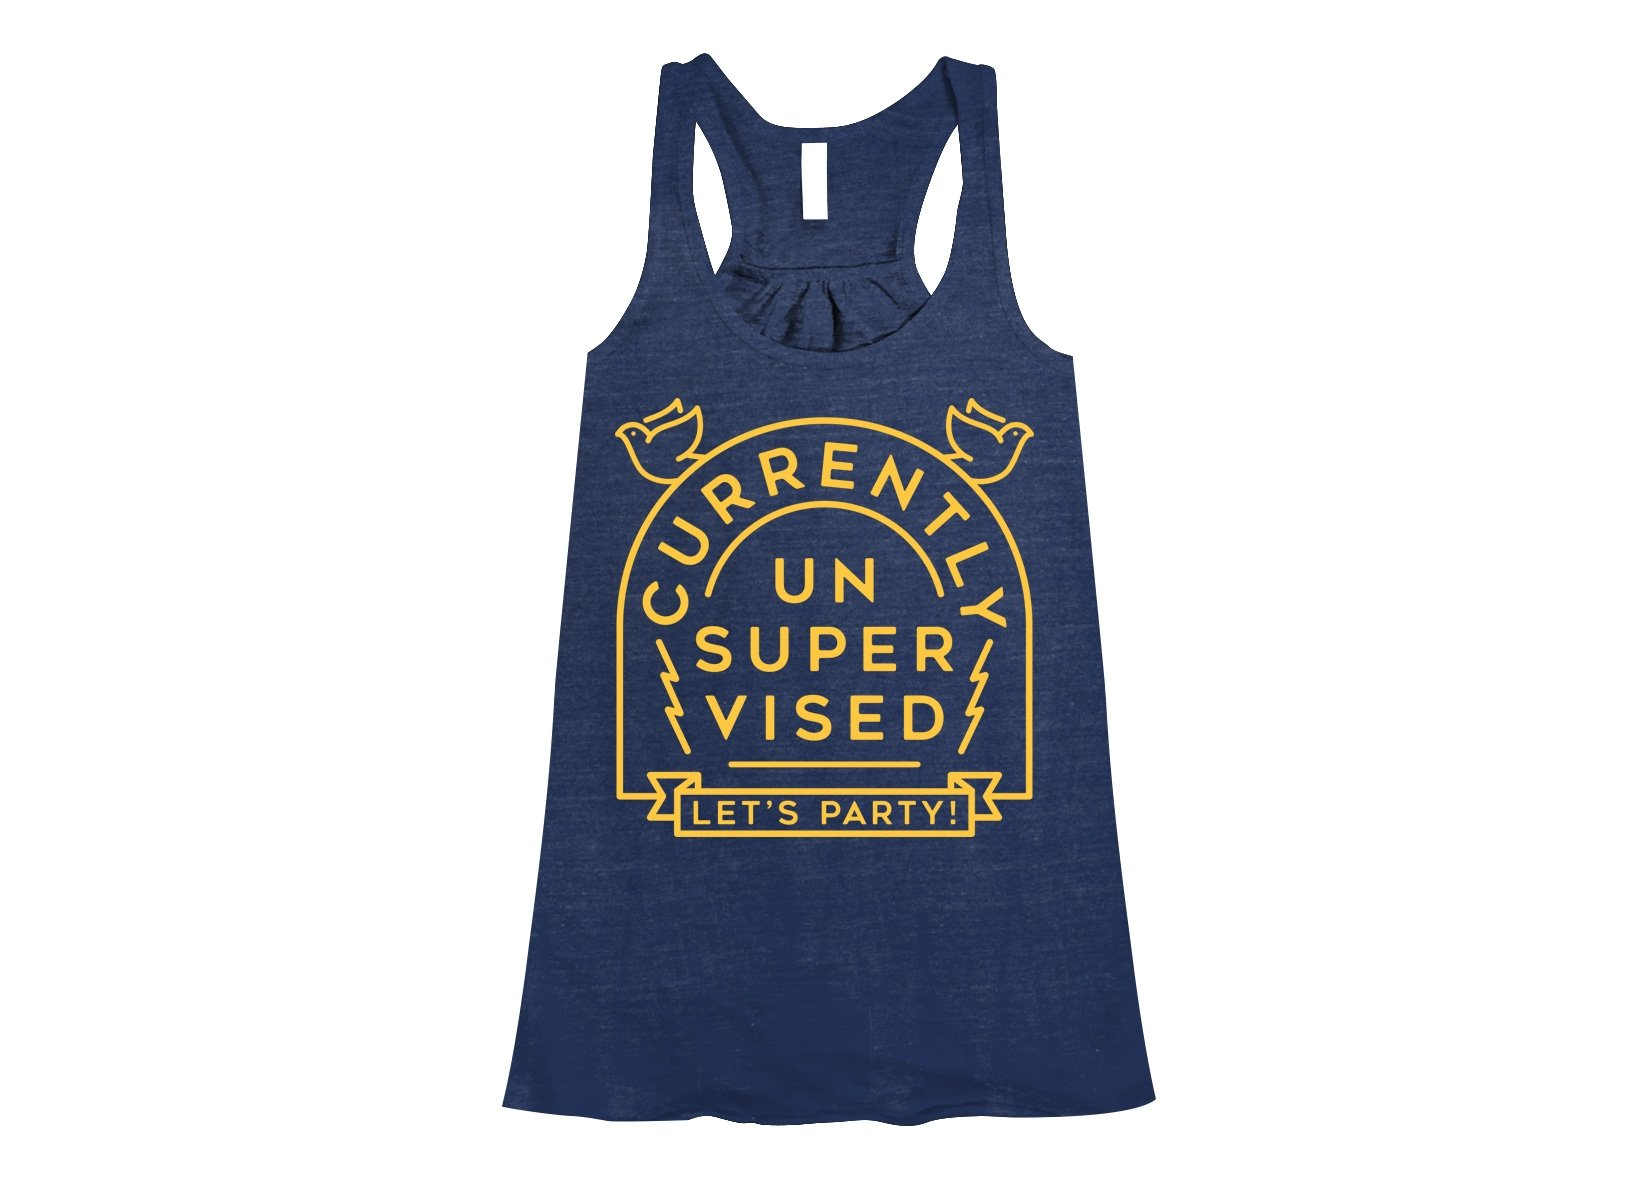 Currently Unsupervised on Womens Tanks T-Shirt